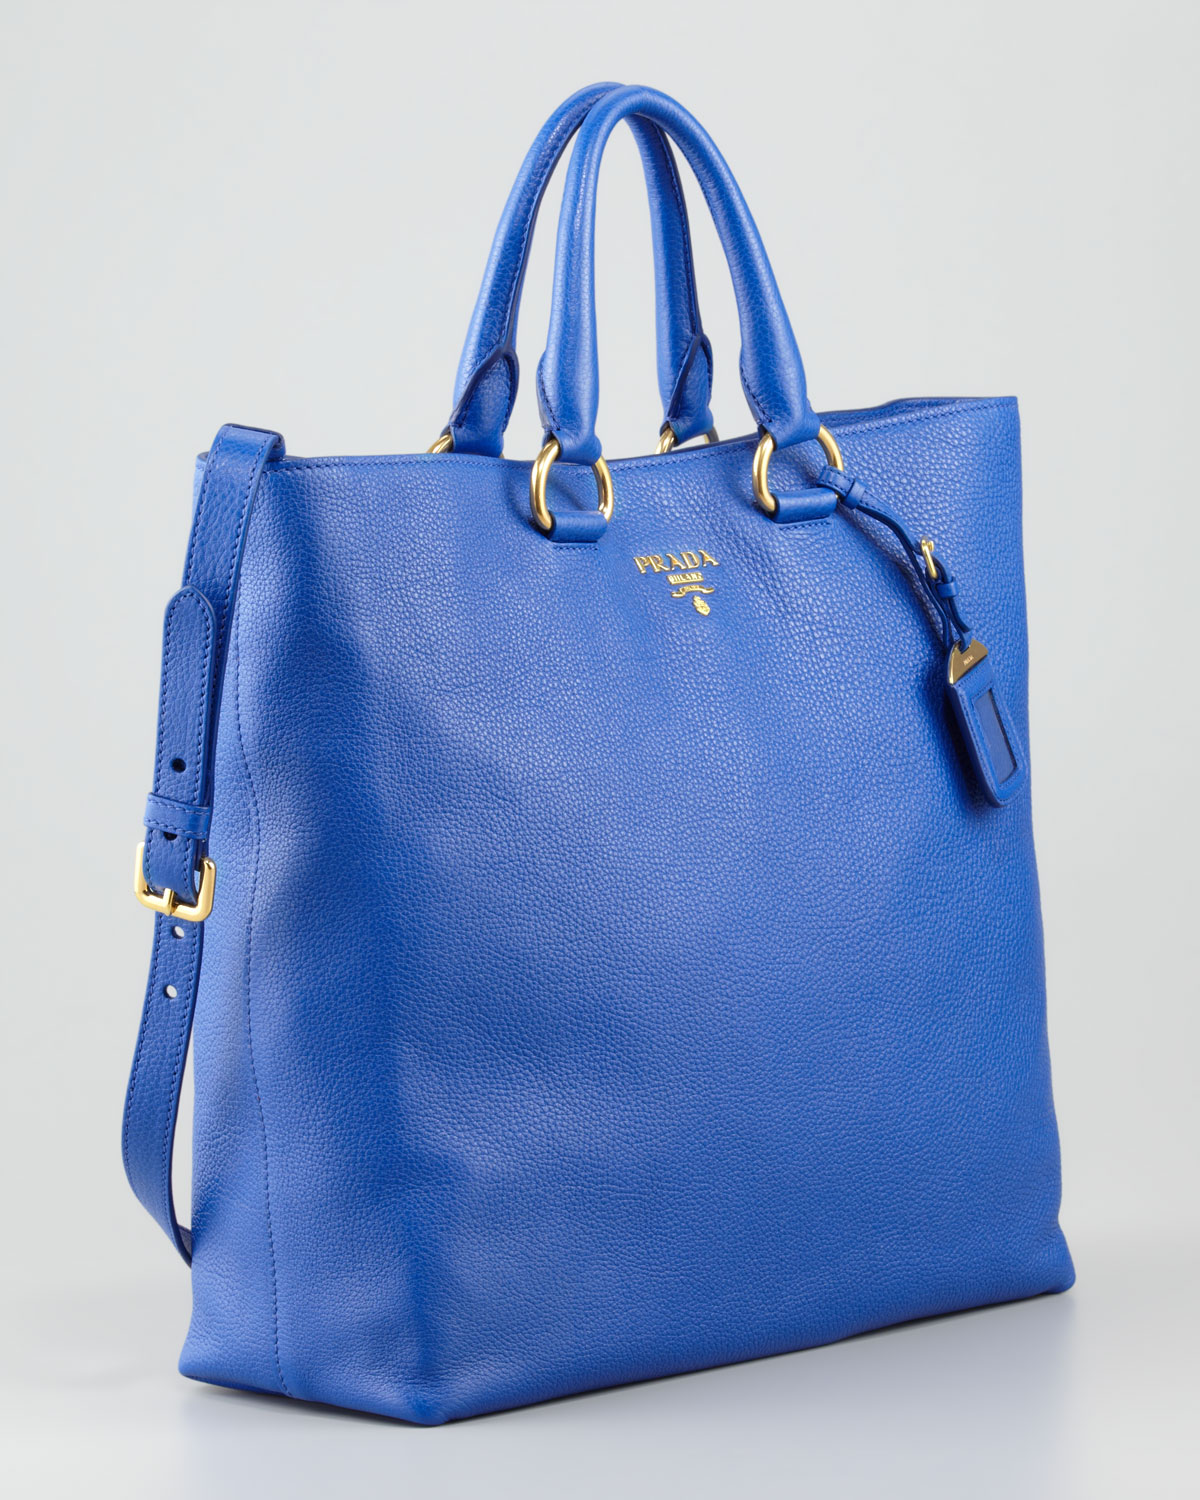 Prada Daino Pebbled Leather Tote Bag in Blue | Lyst